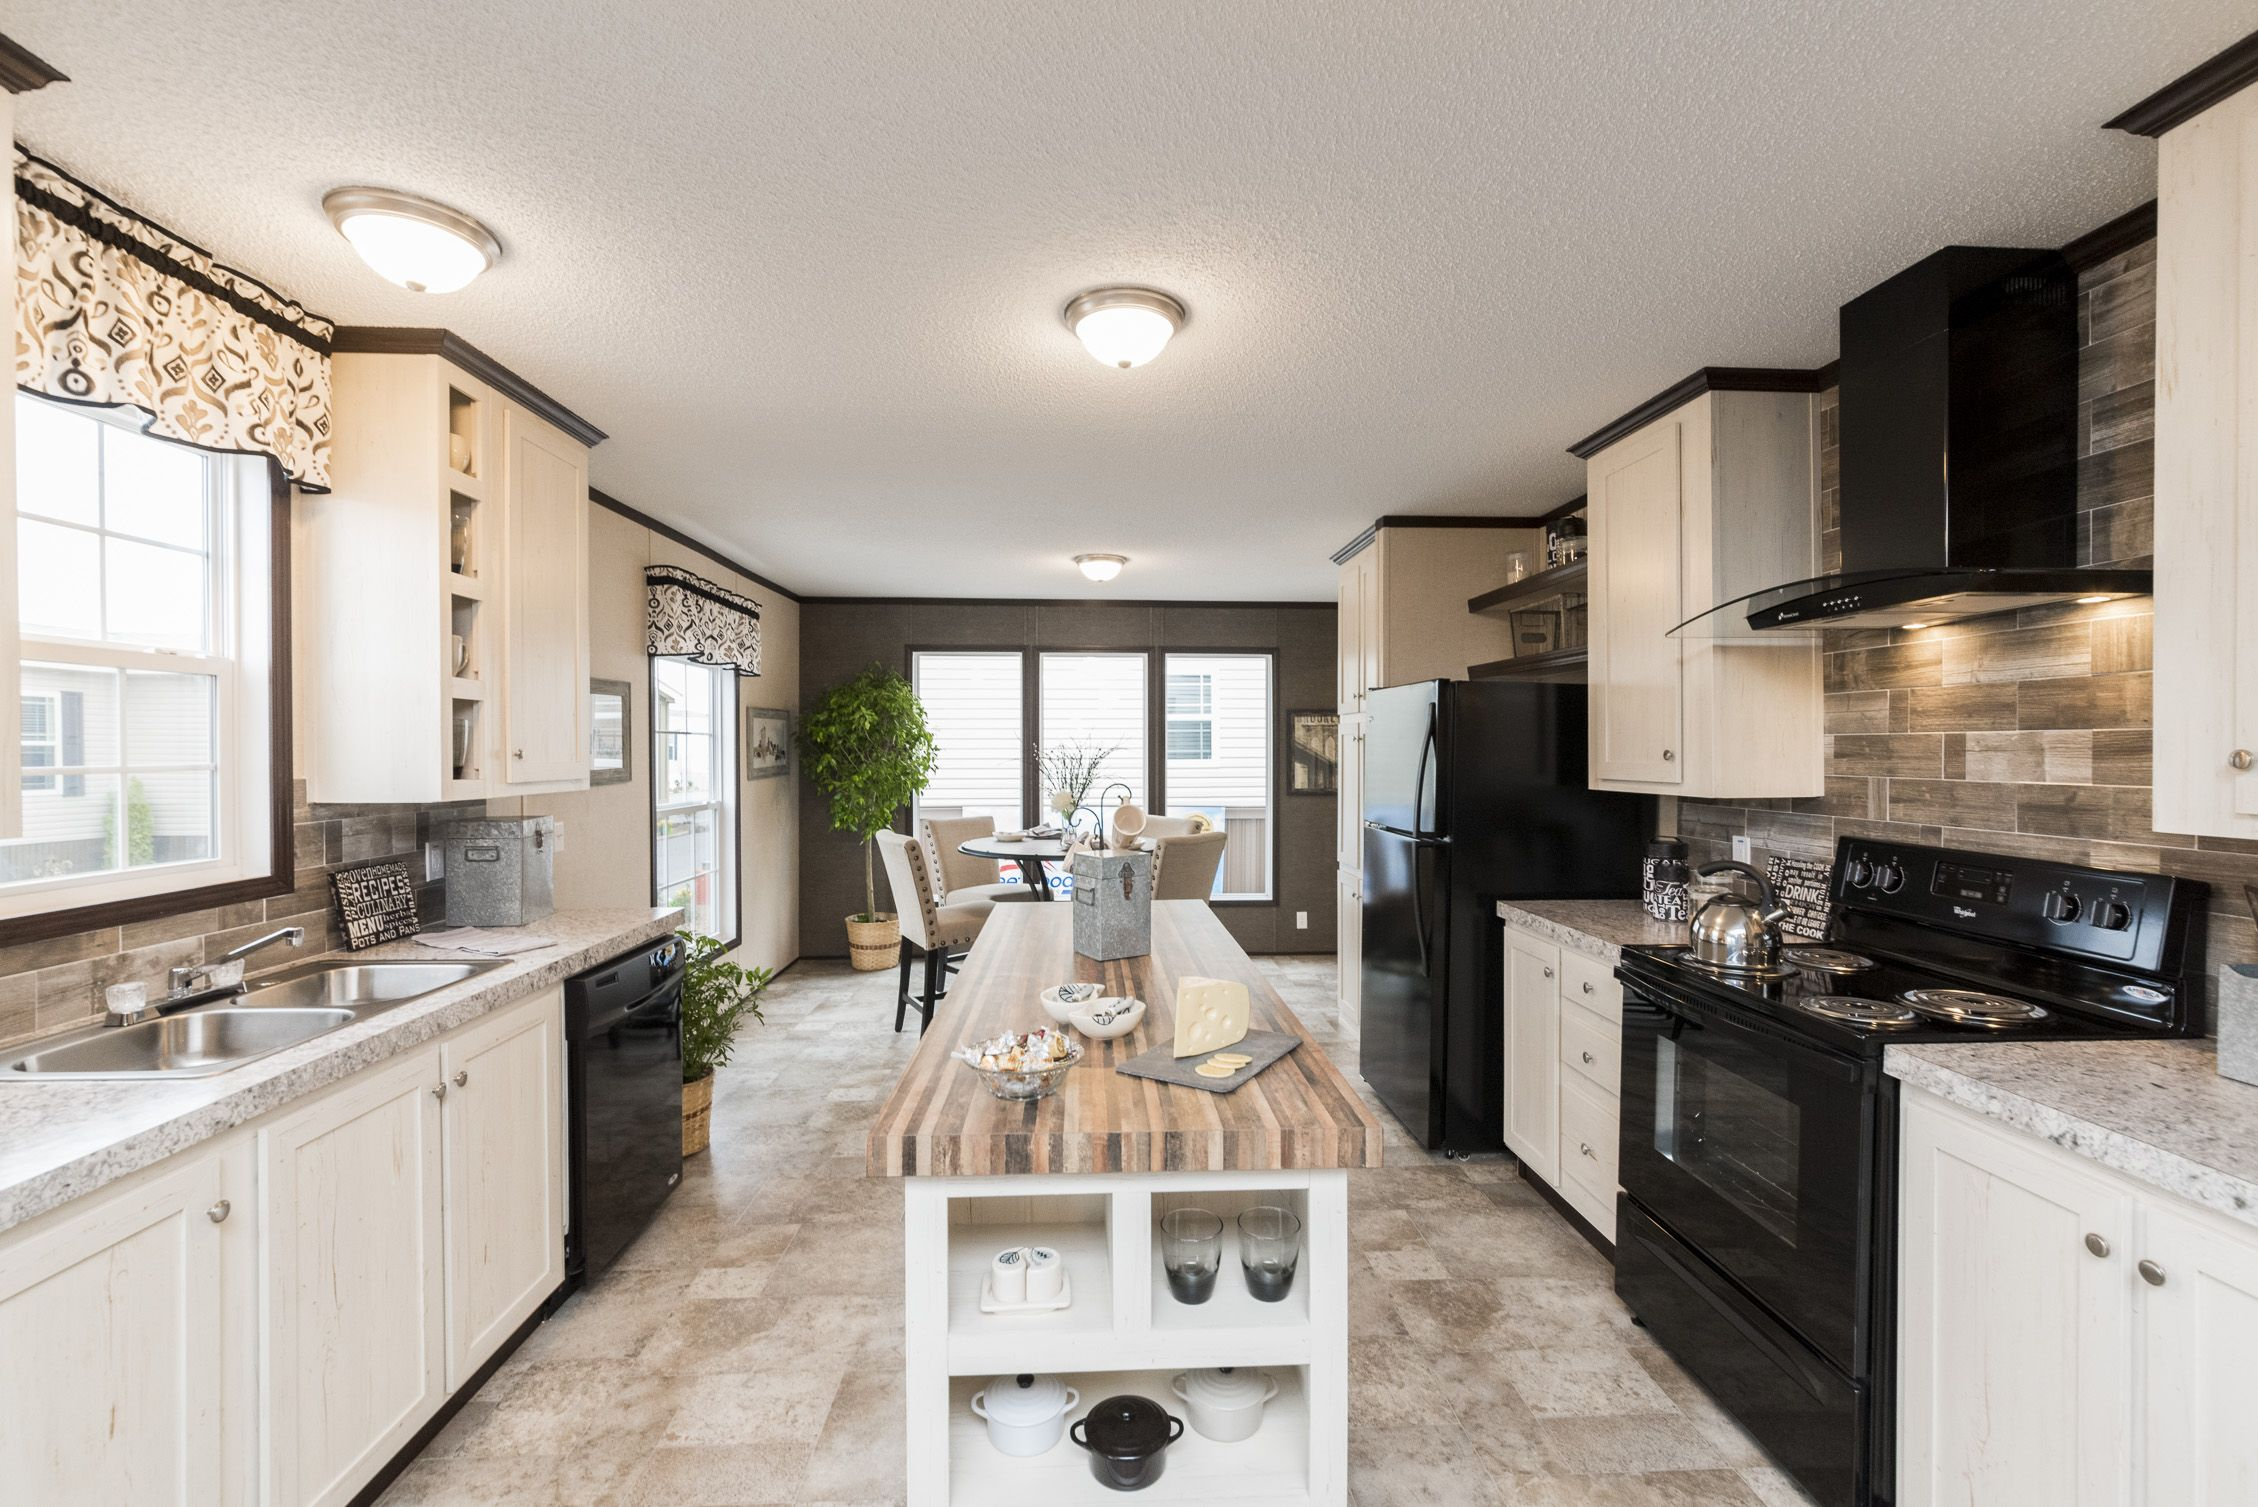 Sandalwood Xl 28483l By Fleetwood Homes Manufacturedhomes